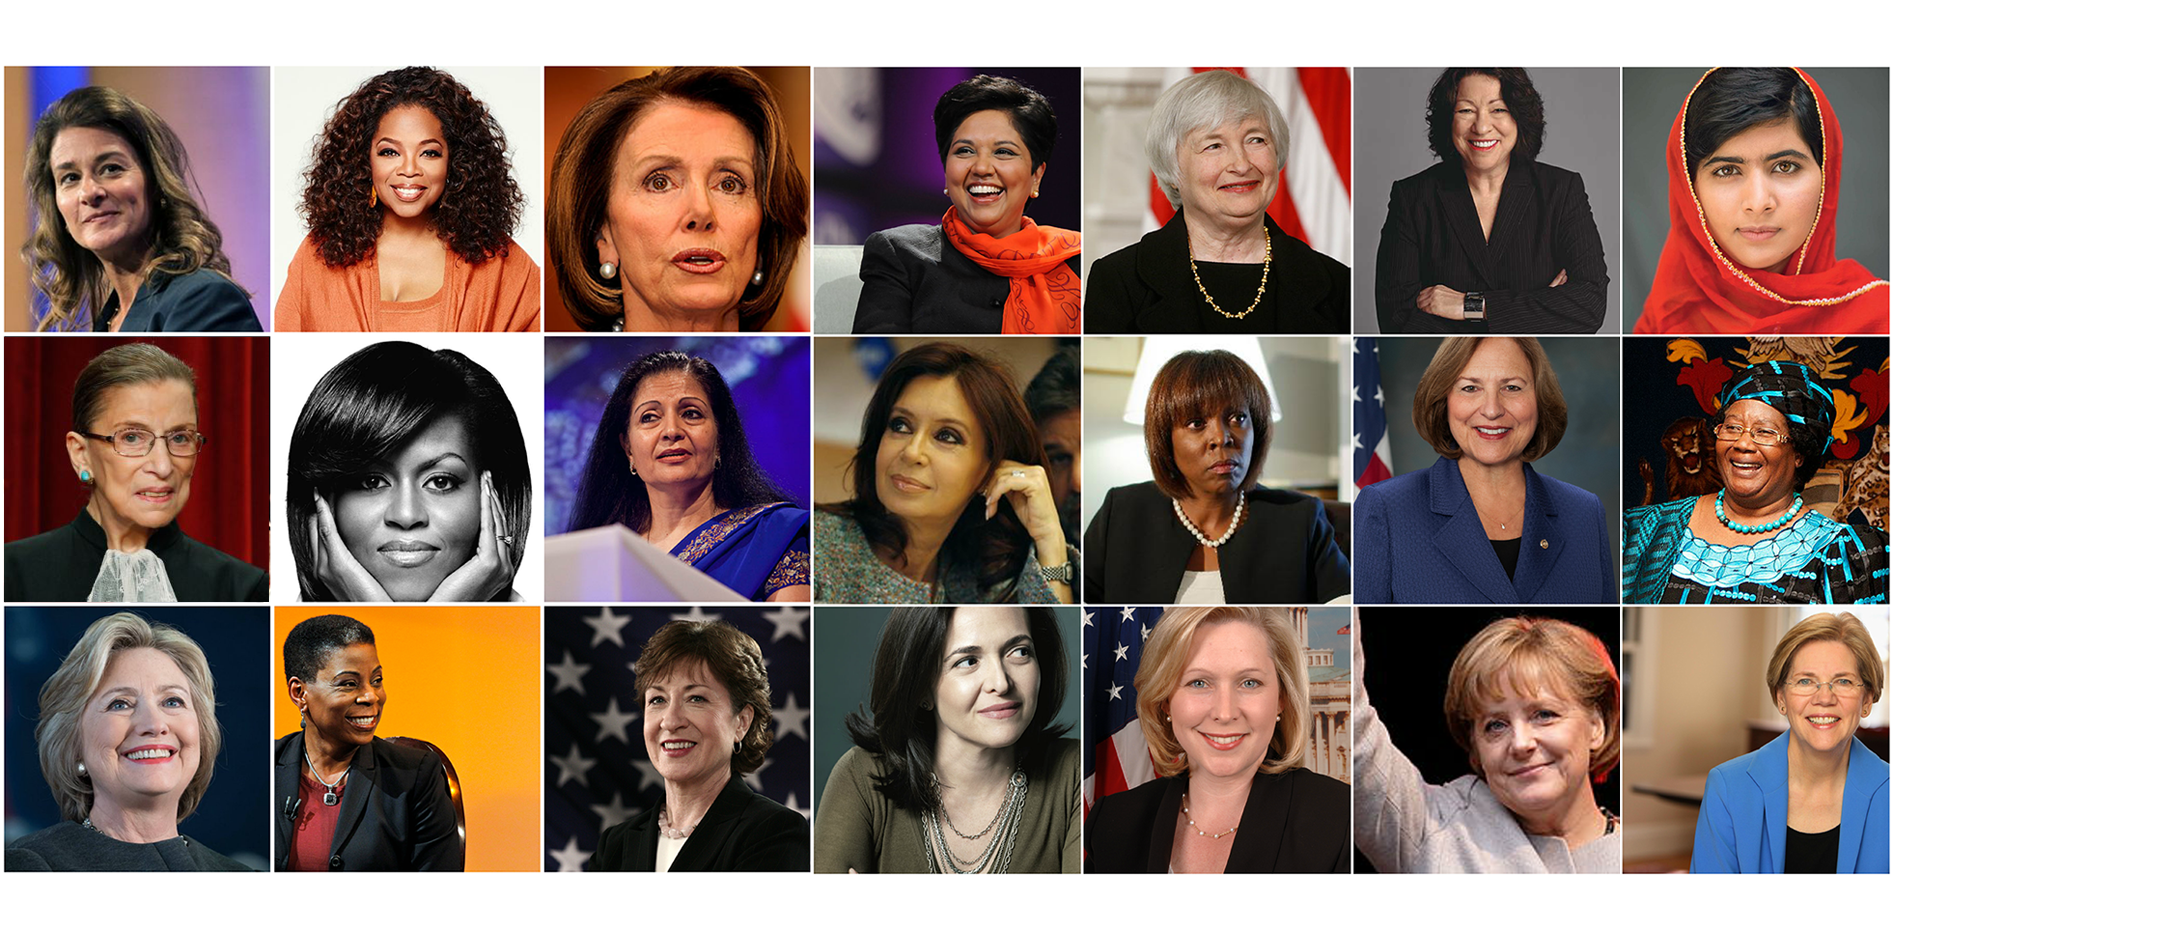 Women in Democracy: Unifying Leaders to Defy the Threat to Social Progress